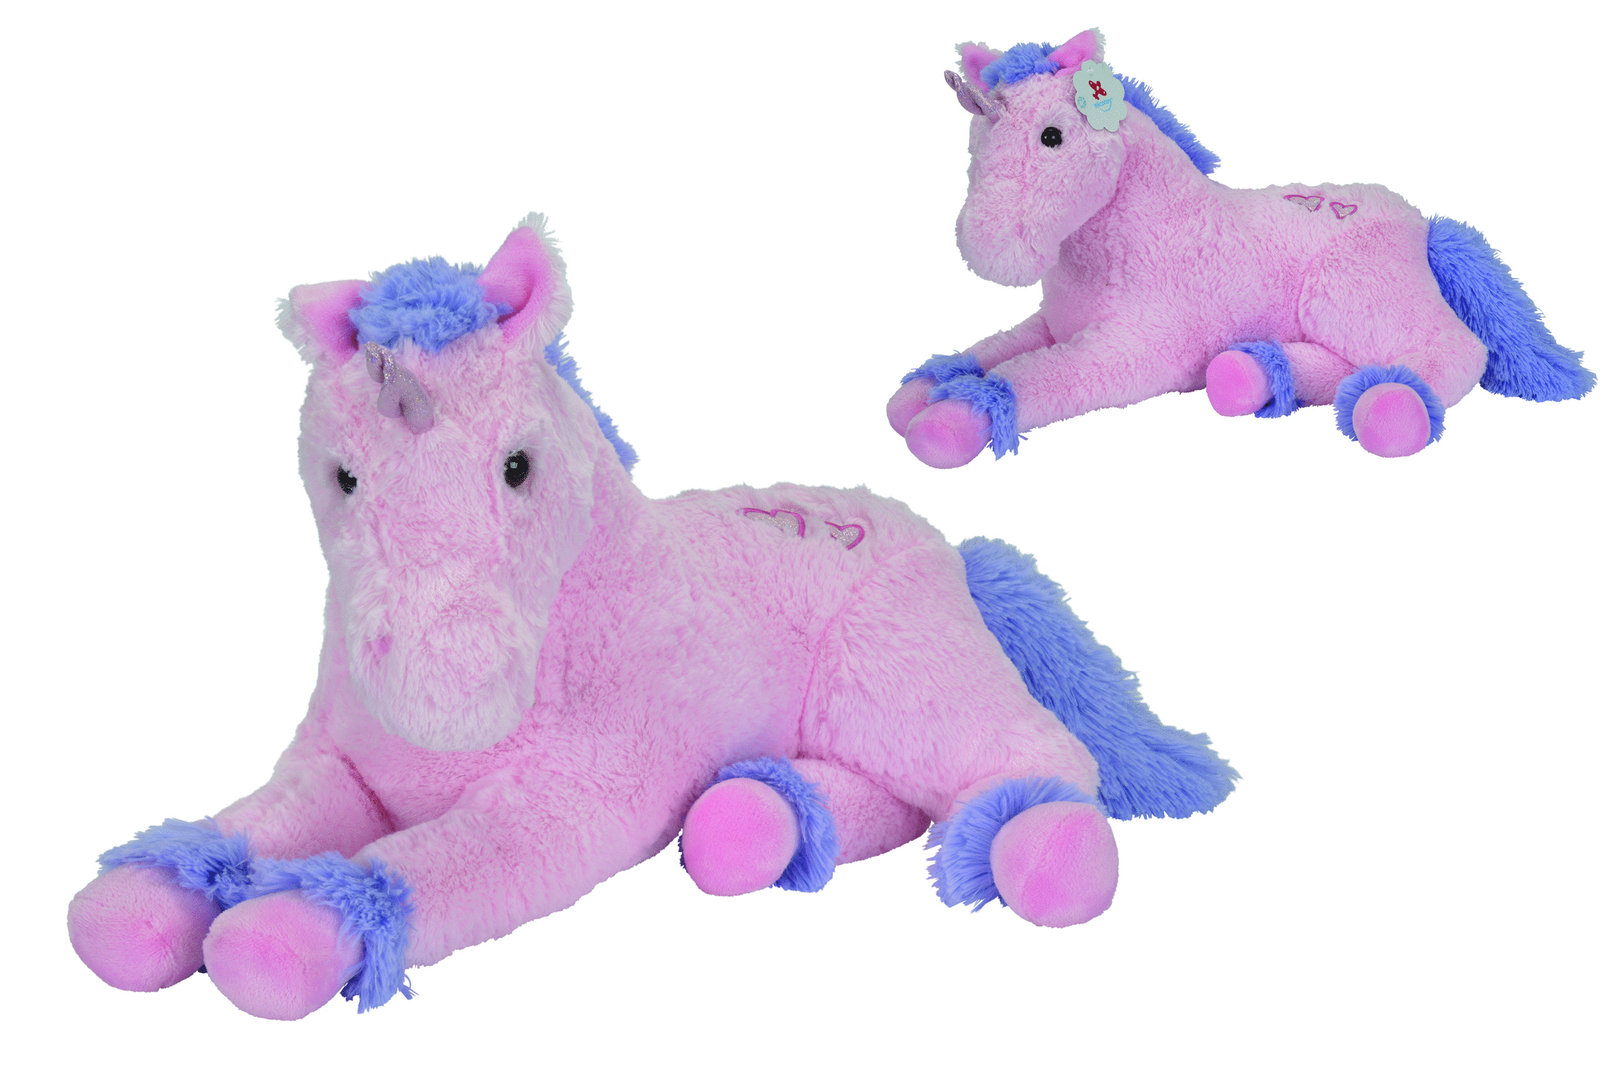 peluche licorne geante rose 1 metre 25 plushtoy. Black Bedroom Furniture Sets. Home Design Ideas